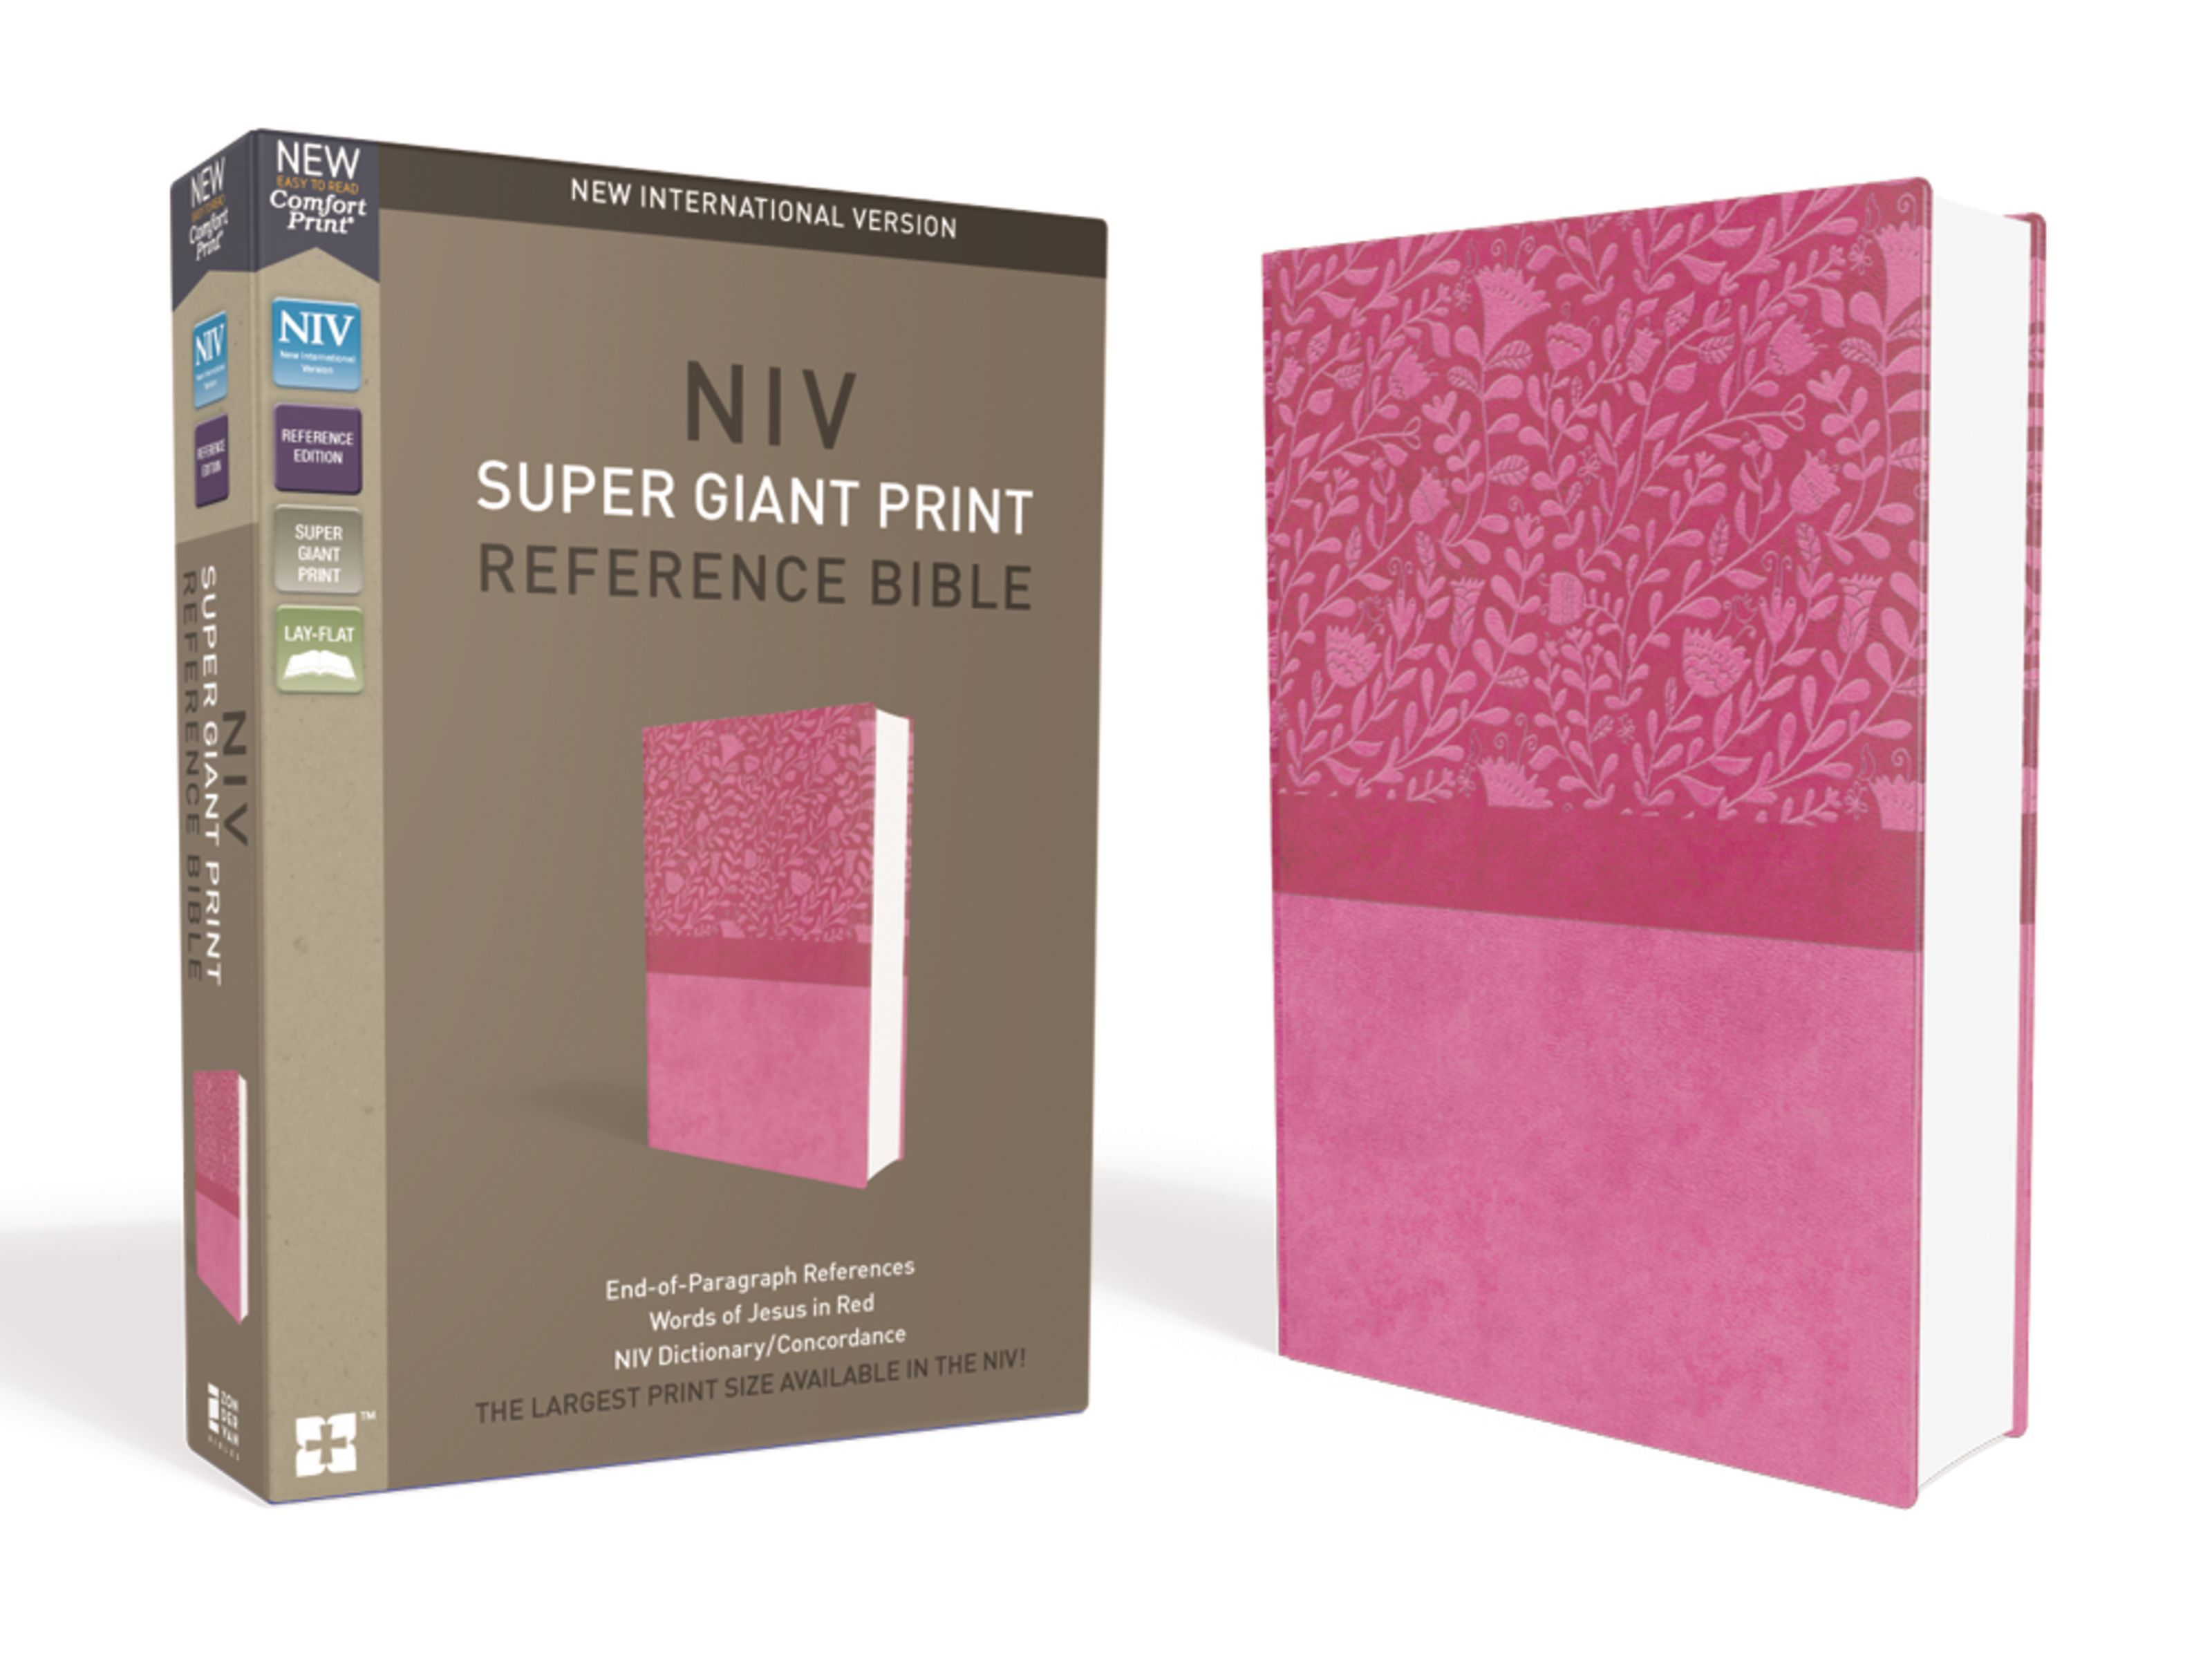 NIV, Super Giant Print Reference Bible, Leathersoft, Pink, Red Letter Edition, Comfort Print